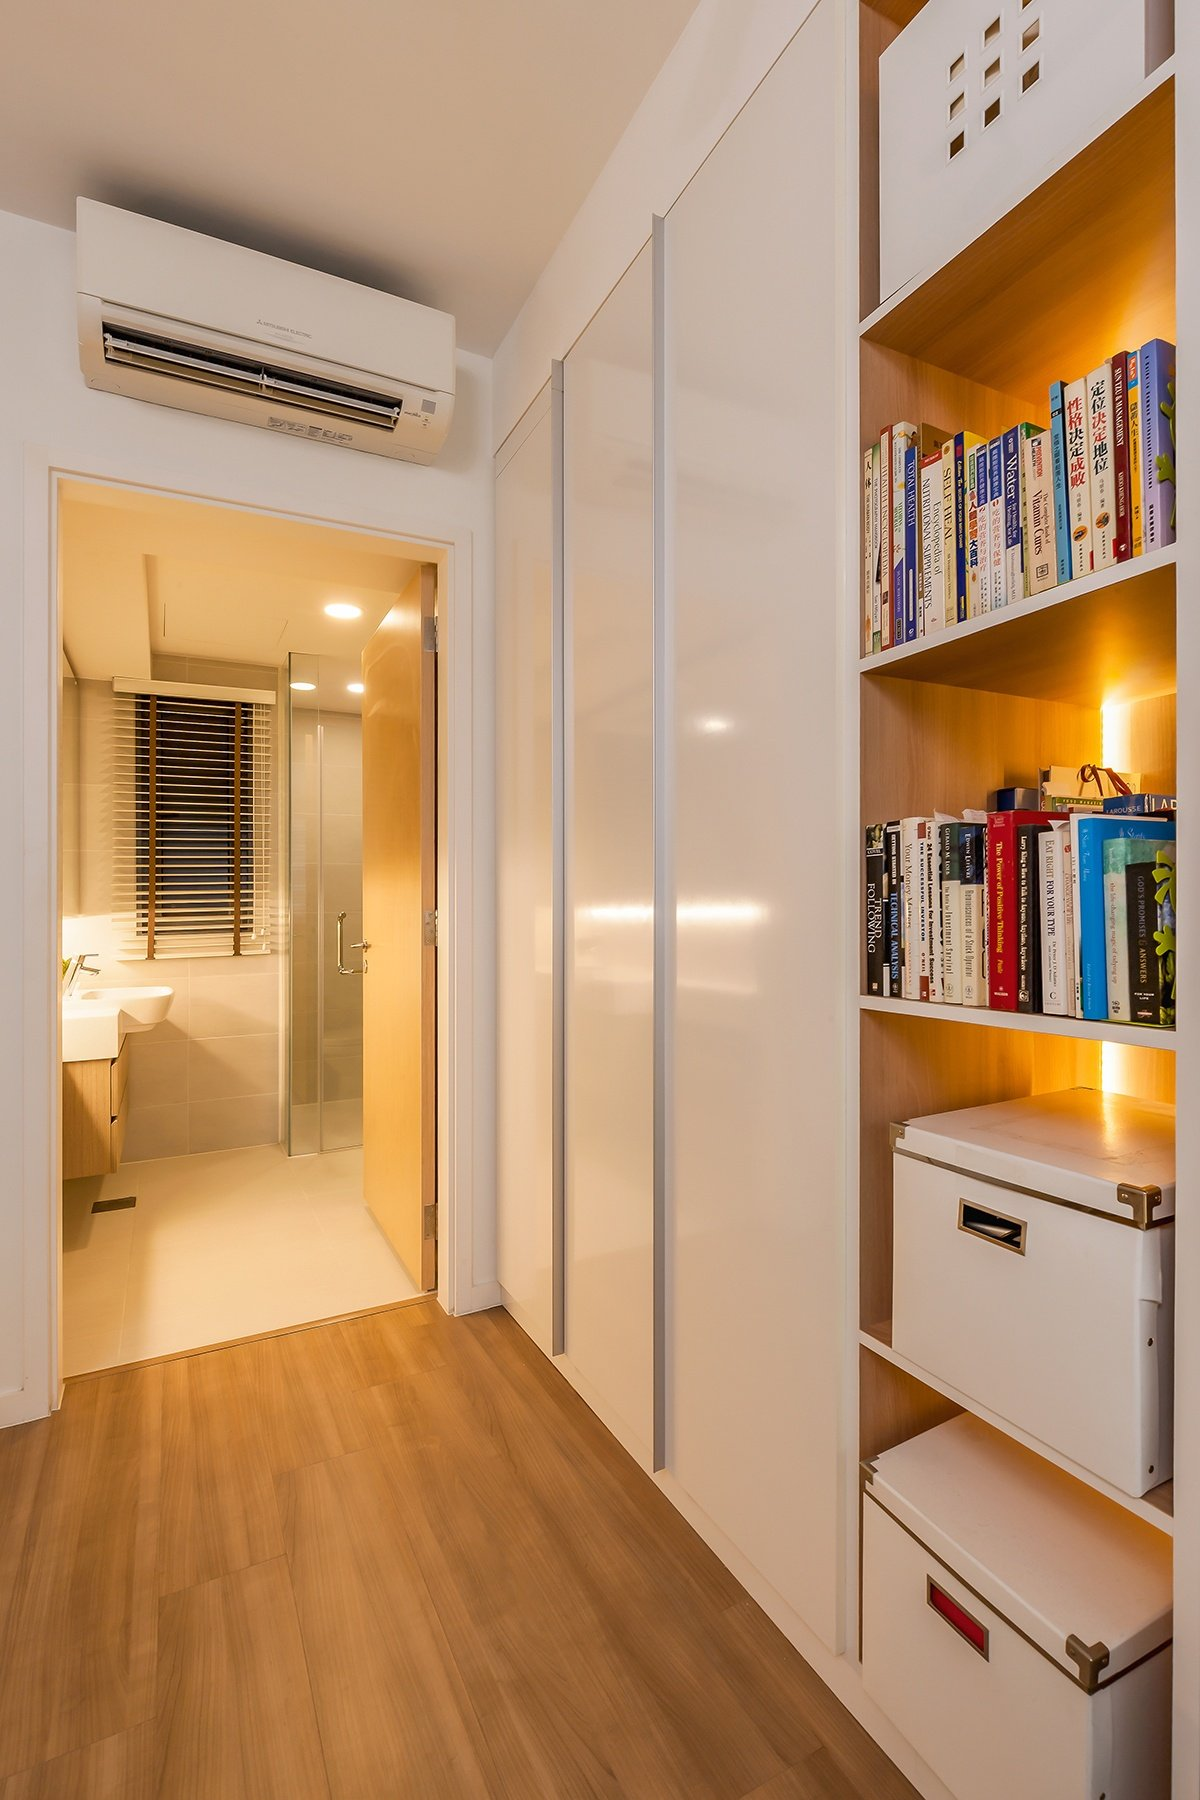 Singapore Hdb Room With Study Table: Stunning Singapore Home Office That Could Be Yours